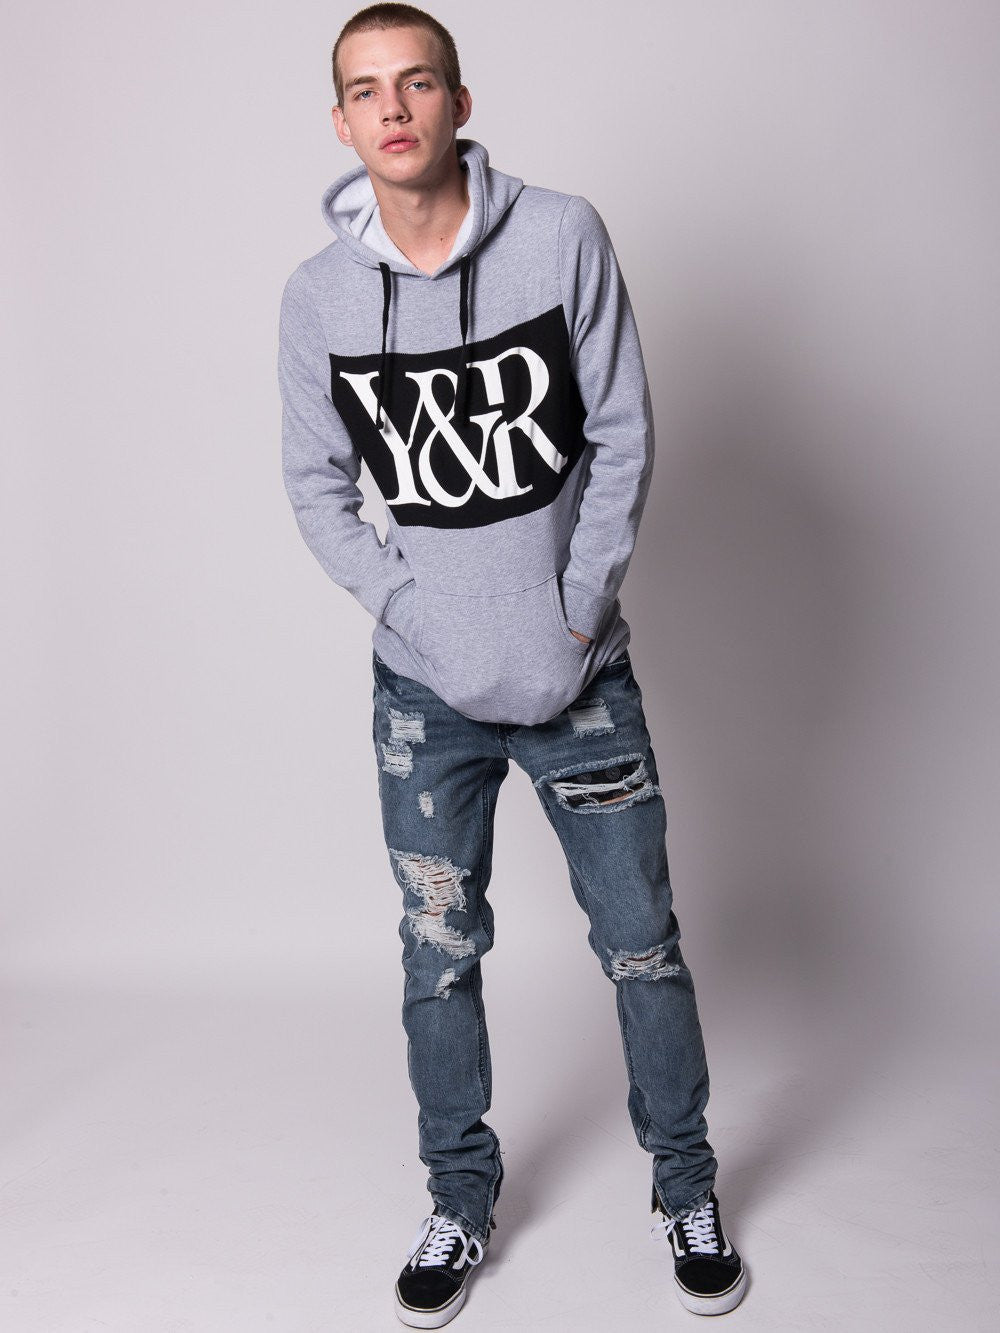 584d5e05 ... Young and Reckless Mens - Tops - Hoodies Hybrid Pullover Hoodie-  Heather Grey ...